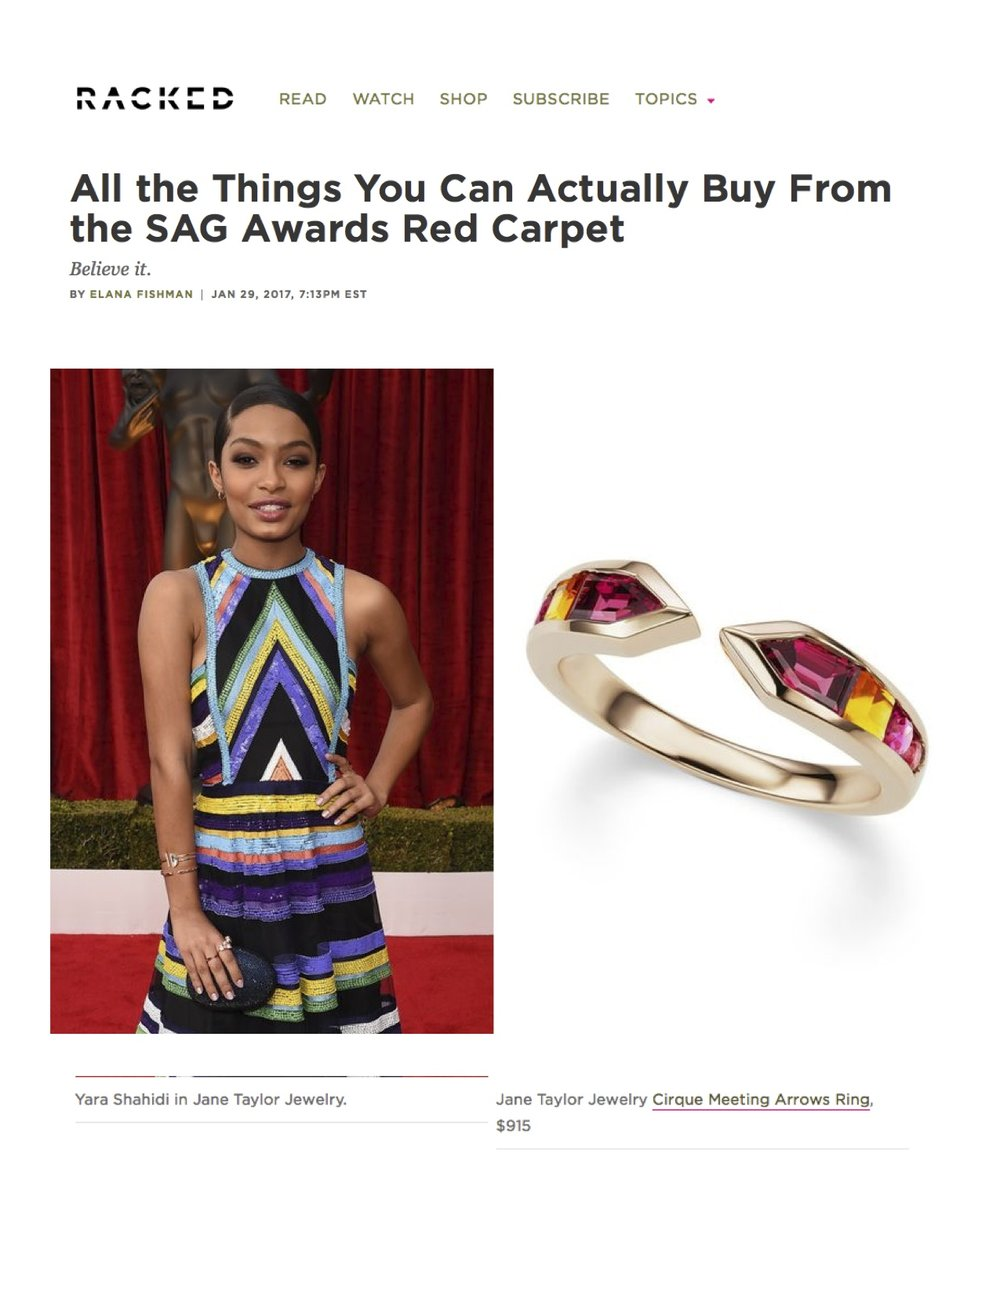 Yara Shahidi in Jane Taylor Earrings, Rings, and Bracelet at the 2017 SAG Awards - Racked.com